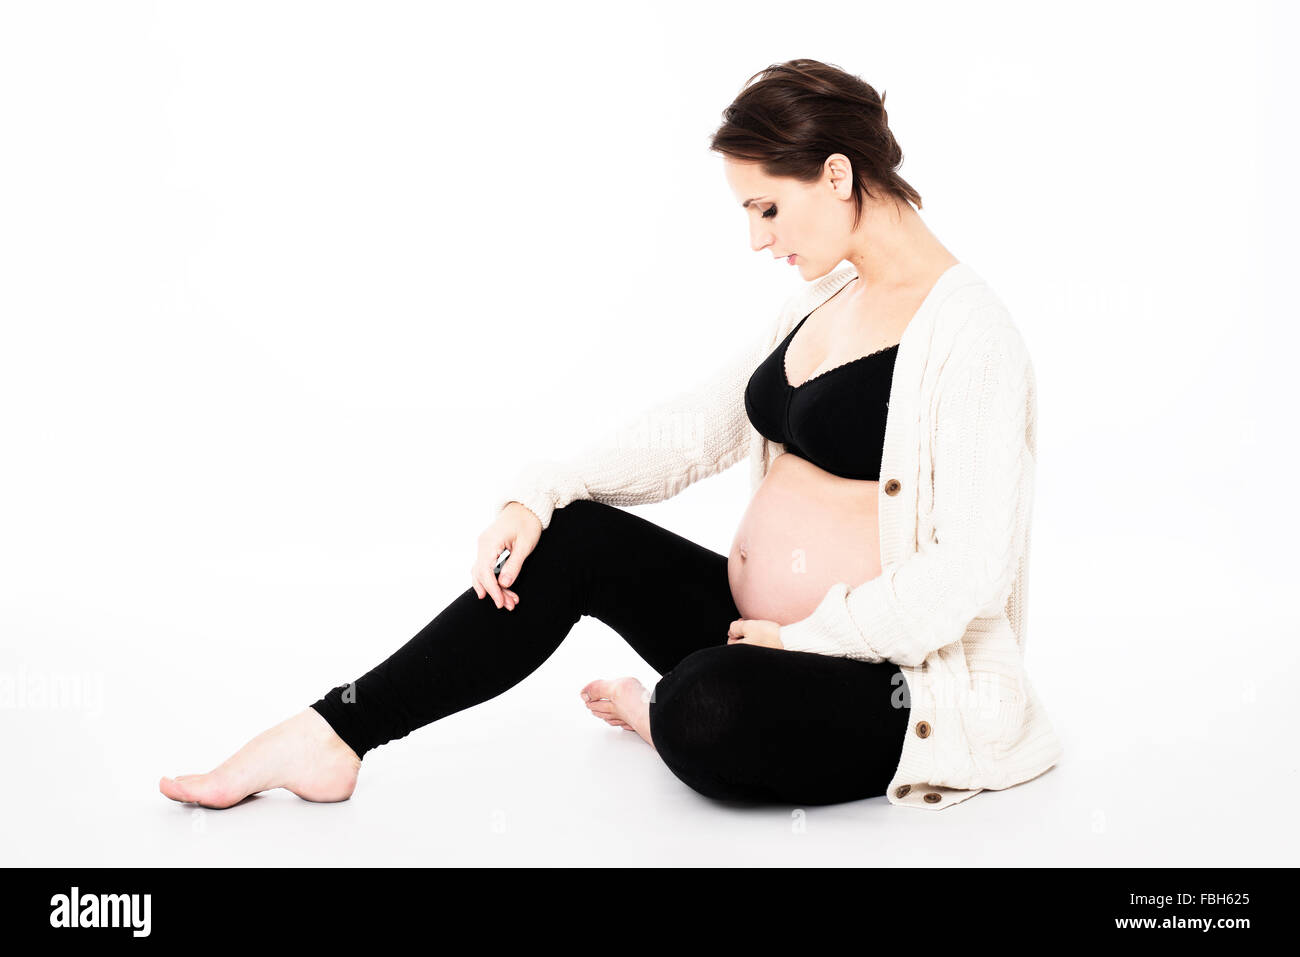 beautiful pregnant woman in black leggings and sports bra, with white wool cardigan sitting on floor, bump on show - Stock Image